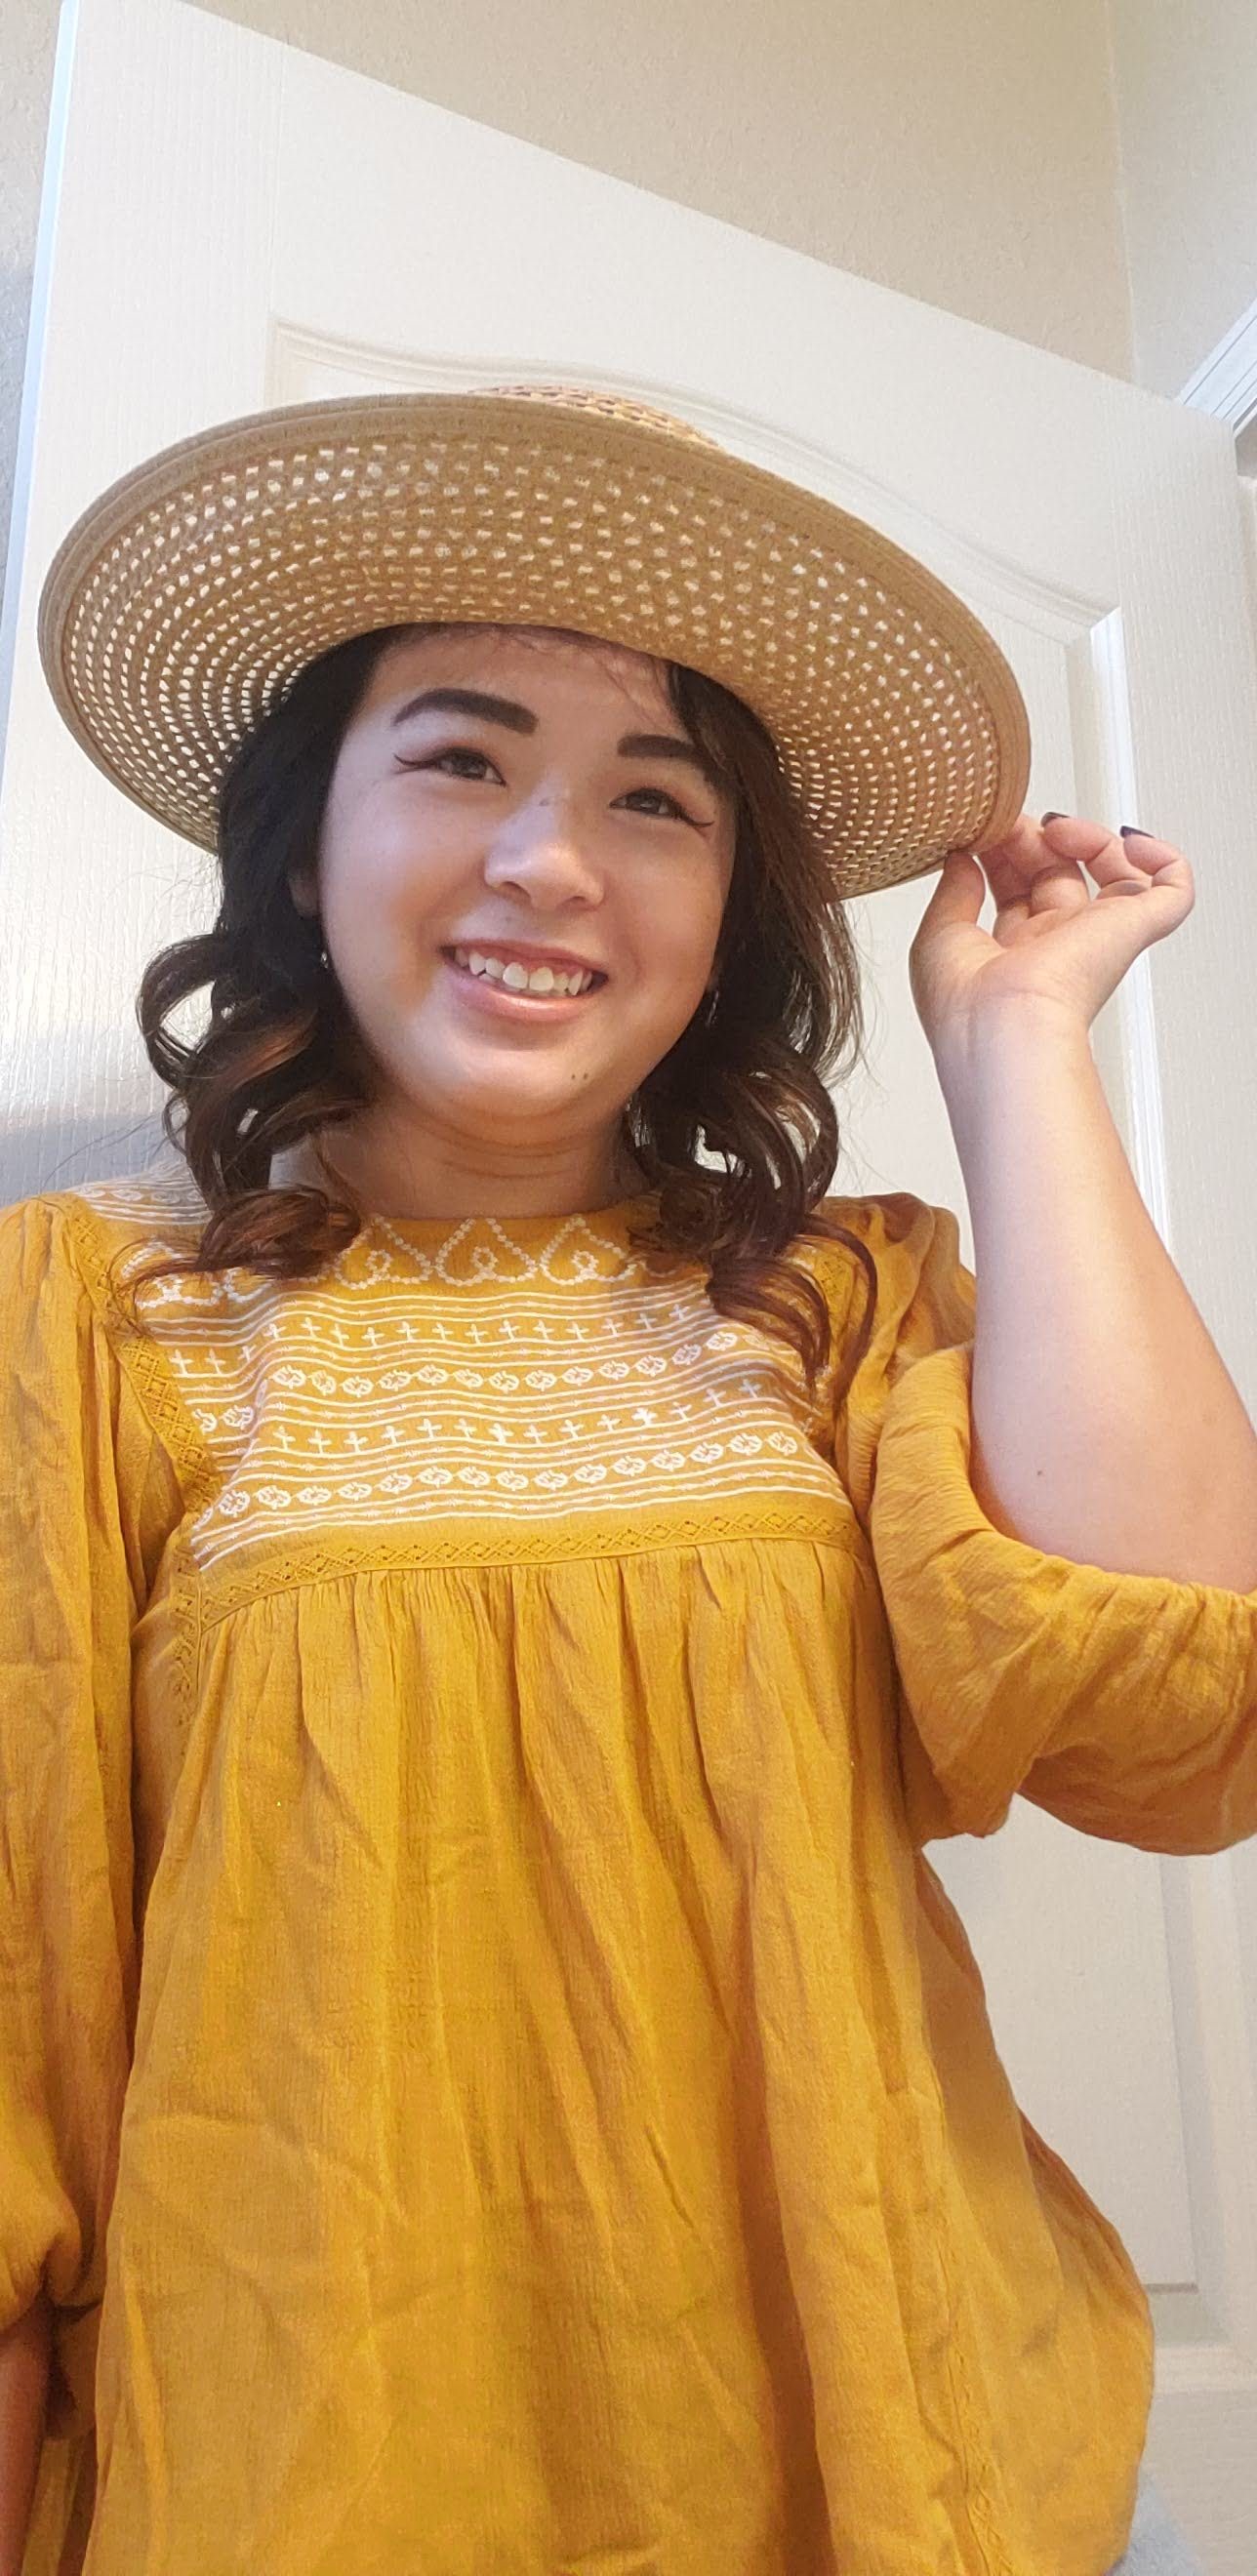 I've had this hat for 2 months, and I have been waiting to wear it out. Thankfully, Shannon recommended this top, with a pair of shorts she sent me, and a hat. Doesn't it look absolutely adorable?